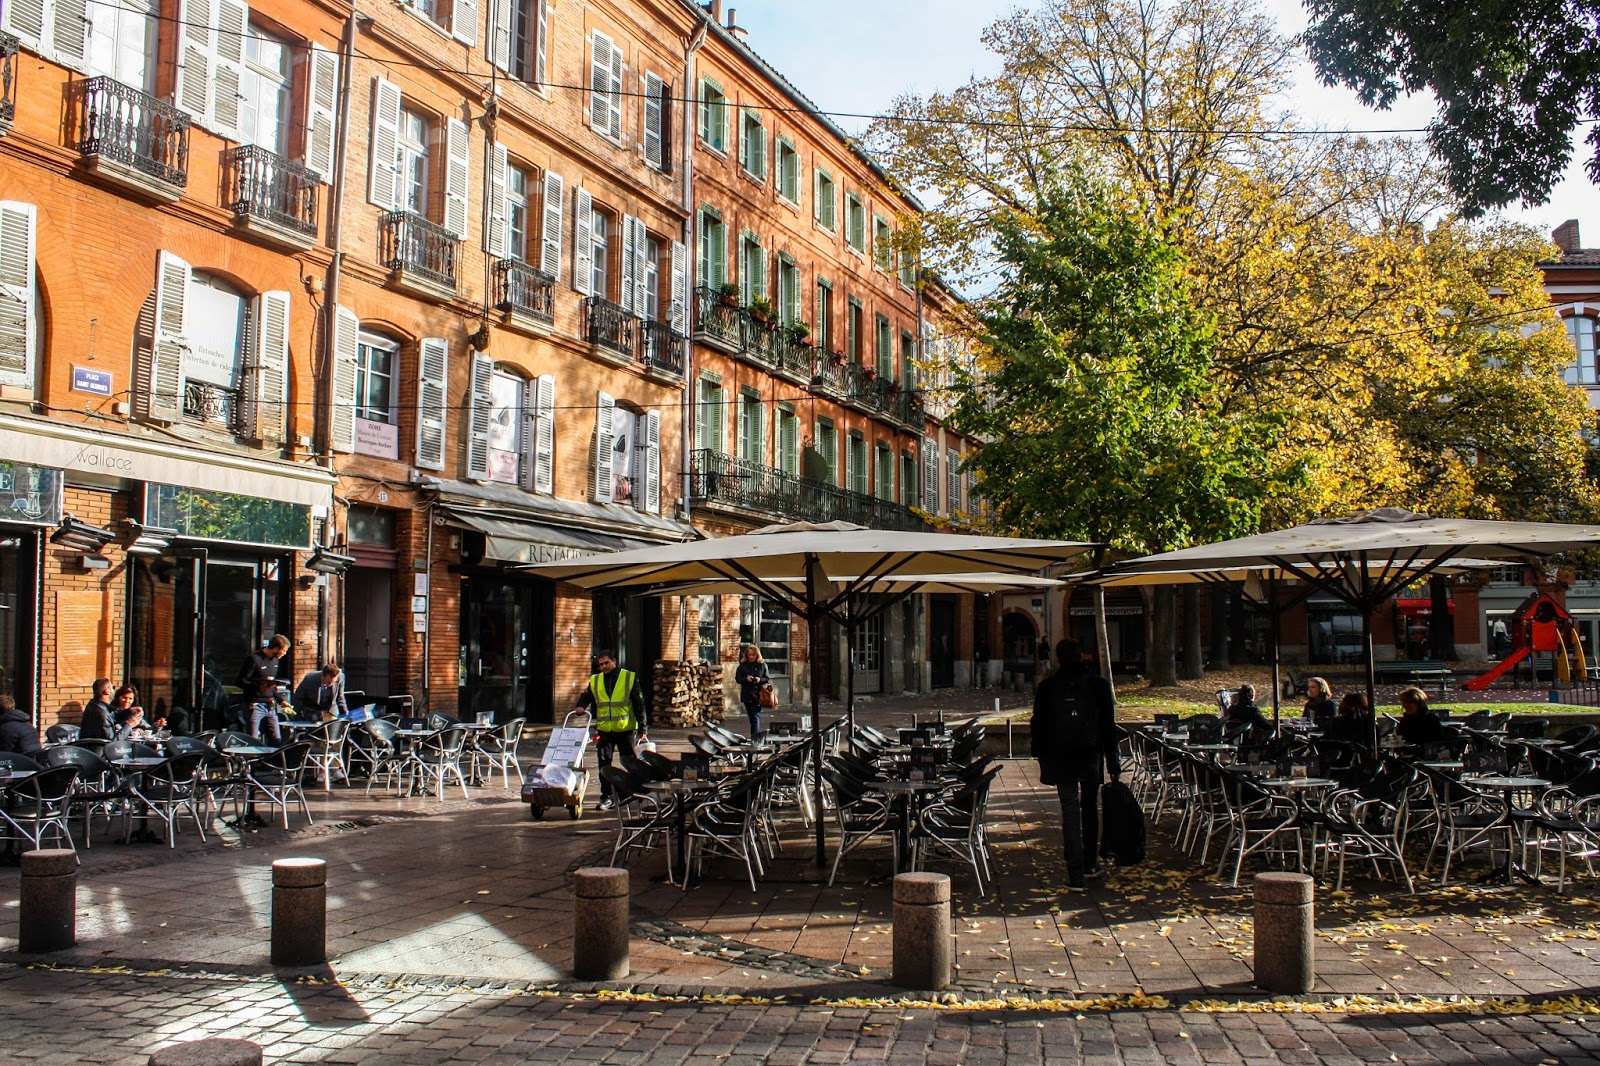 toulouse, place saint-georges